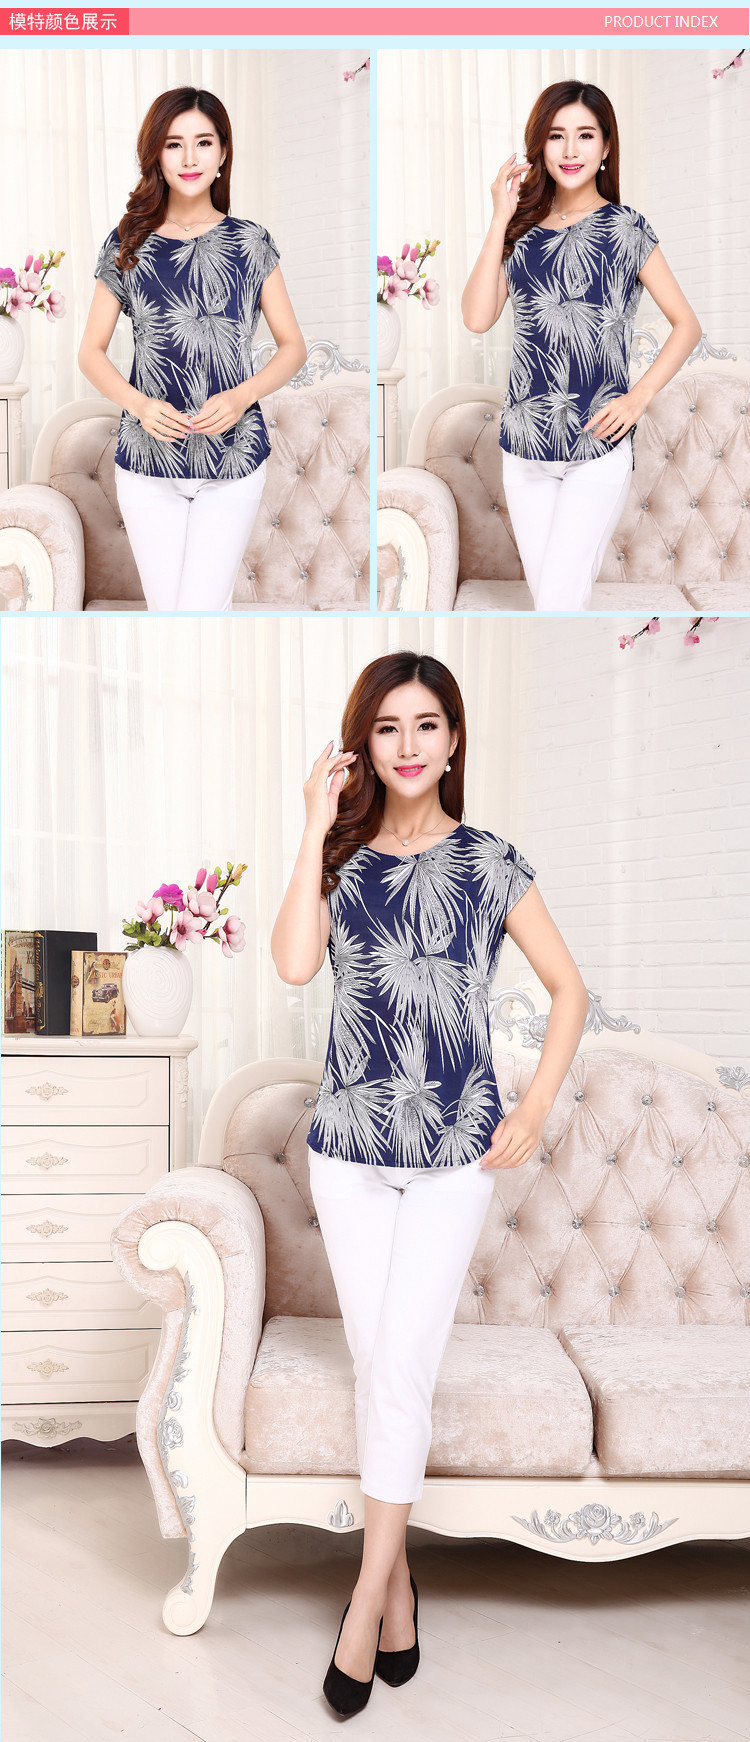 Hd2f8e3b4cd9c44259d848031454f39a36 - 5XL Women Ladies Clothing Tops short Sleeve printing Shirts Casual Boat anchor Blouse Silk female woman clothes plus size